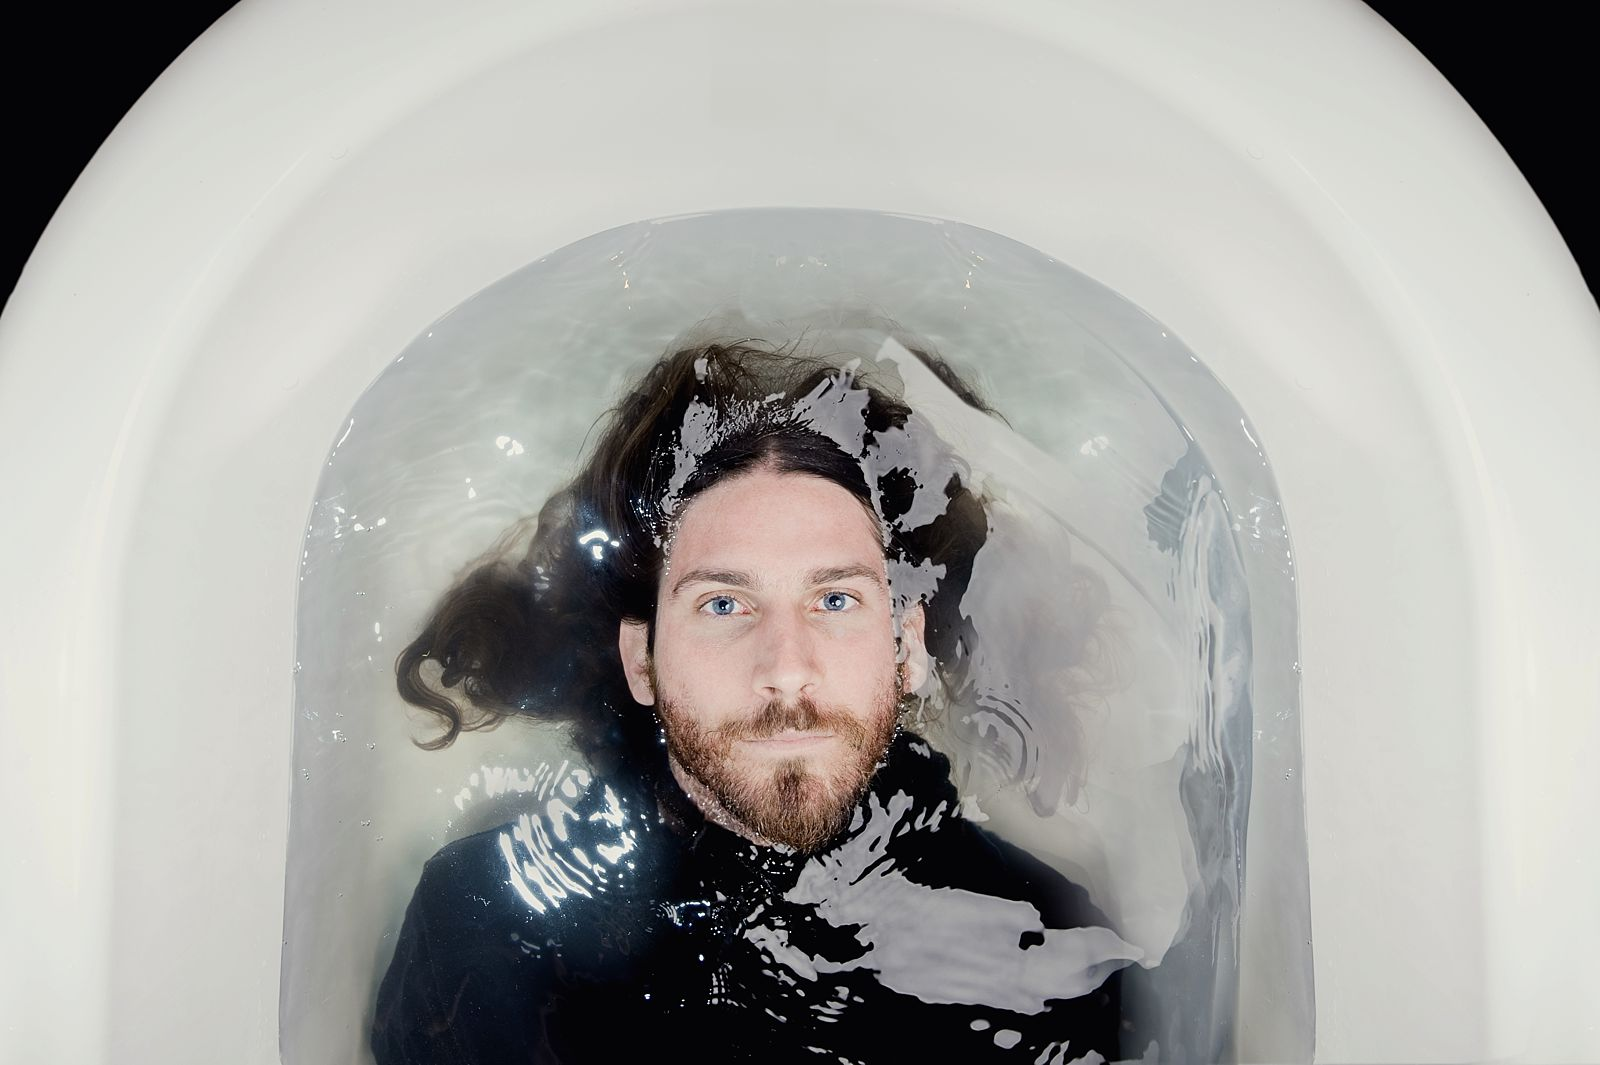 Creative portrait of Guy Buttery in the bath